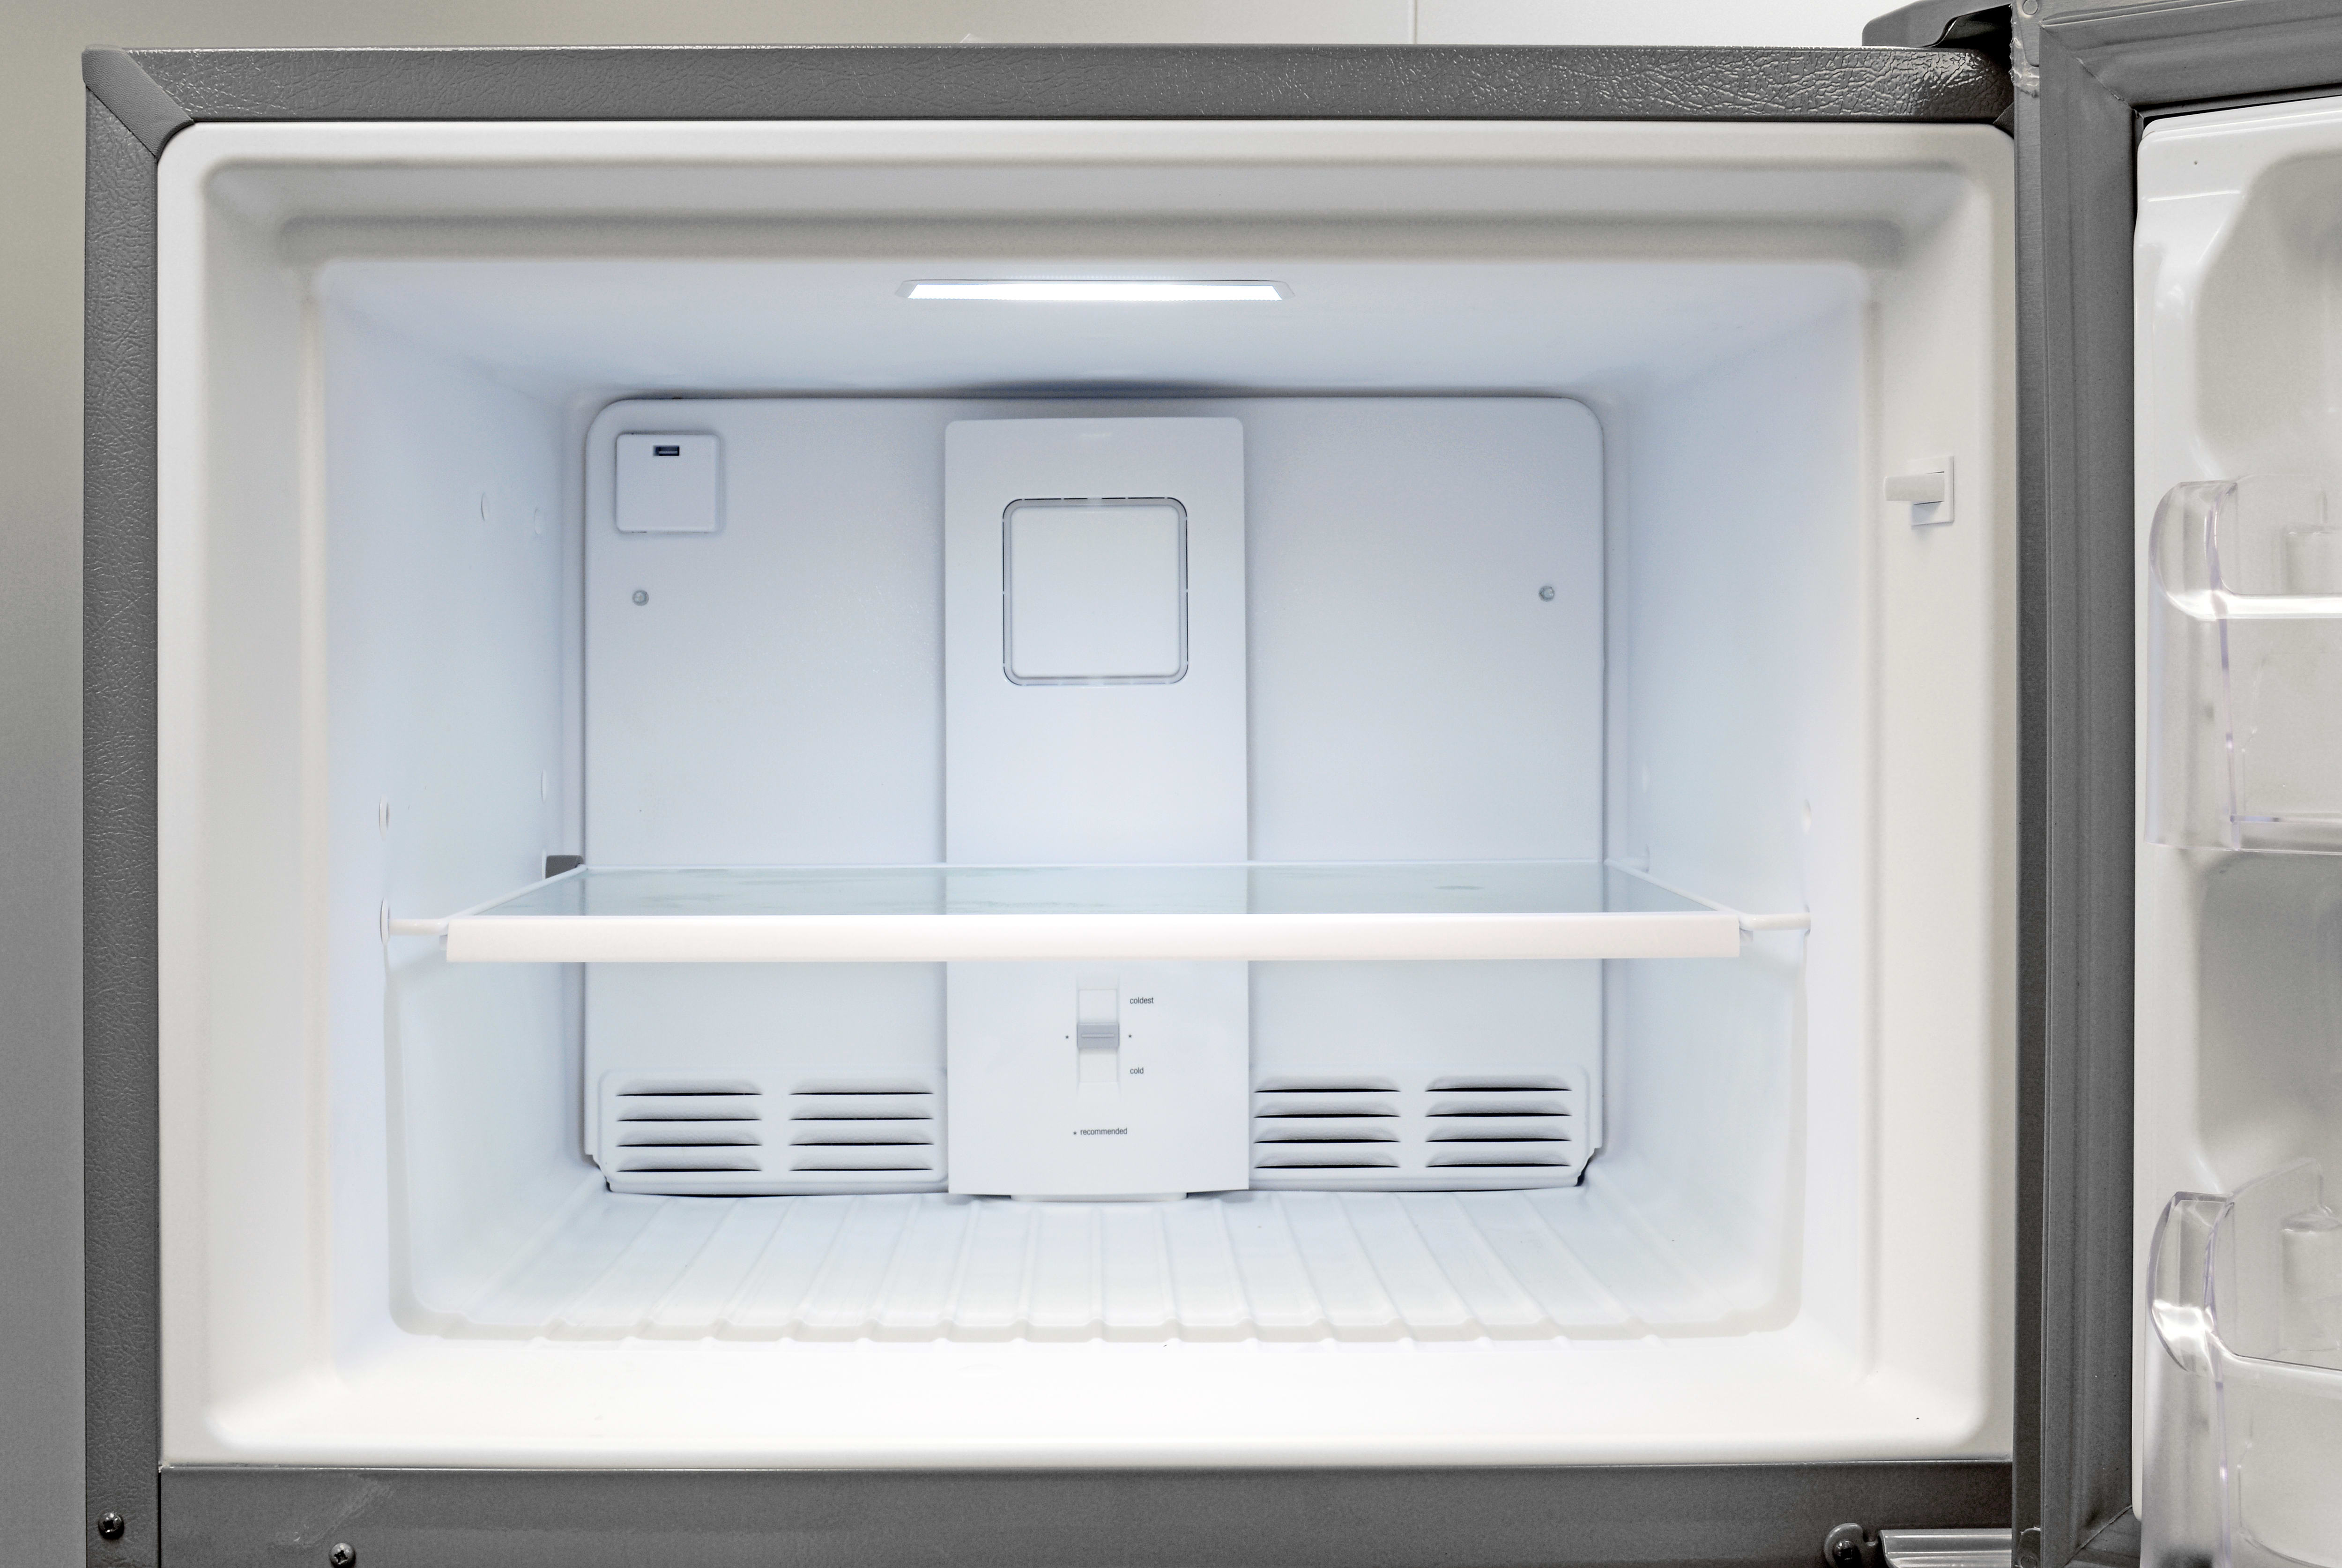 There's no icemaker in the Frigidaire Gallery FGHT2046QF, but at least the freezer gets its own light.